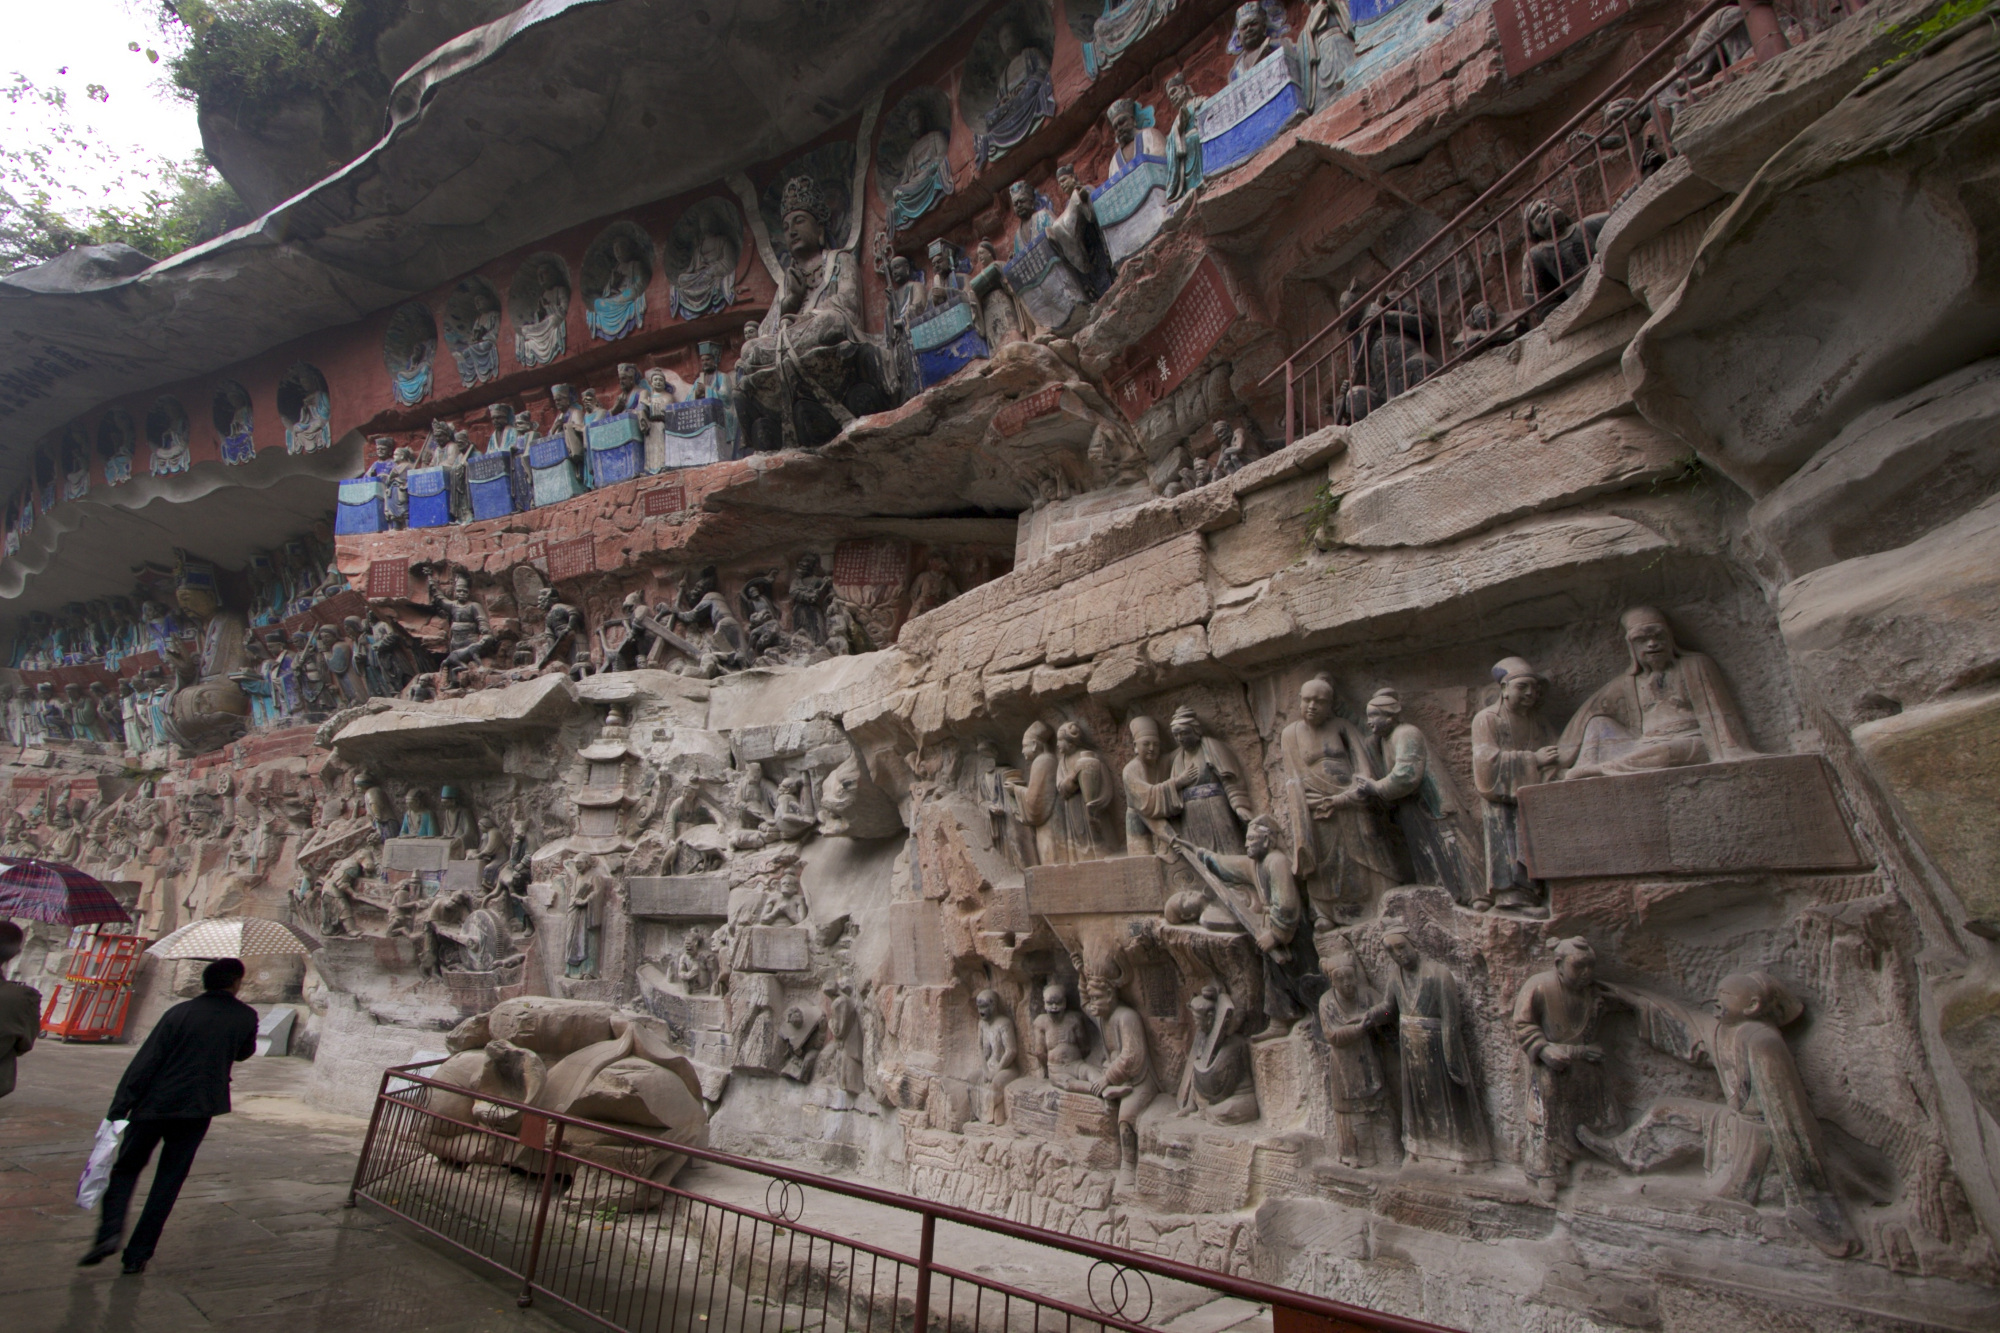 Overview of Hell tableau, 12th century CE, Great Buddha Bend, Baodingshan.